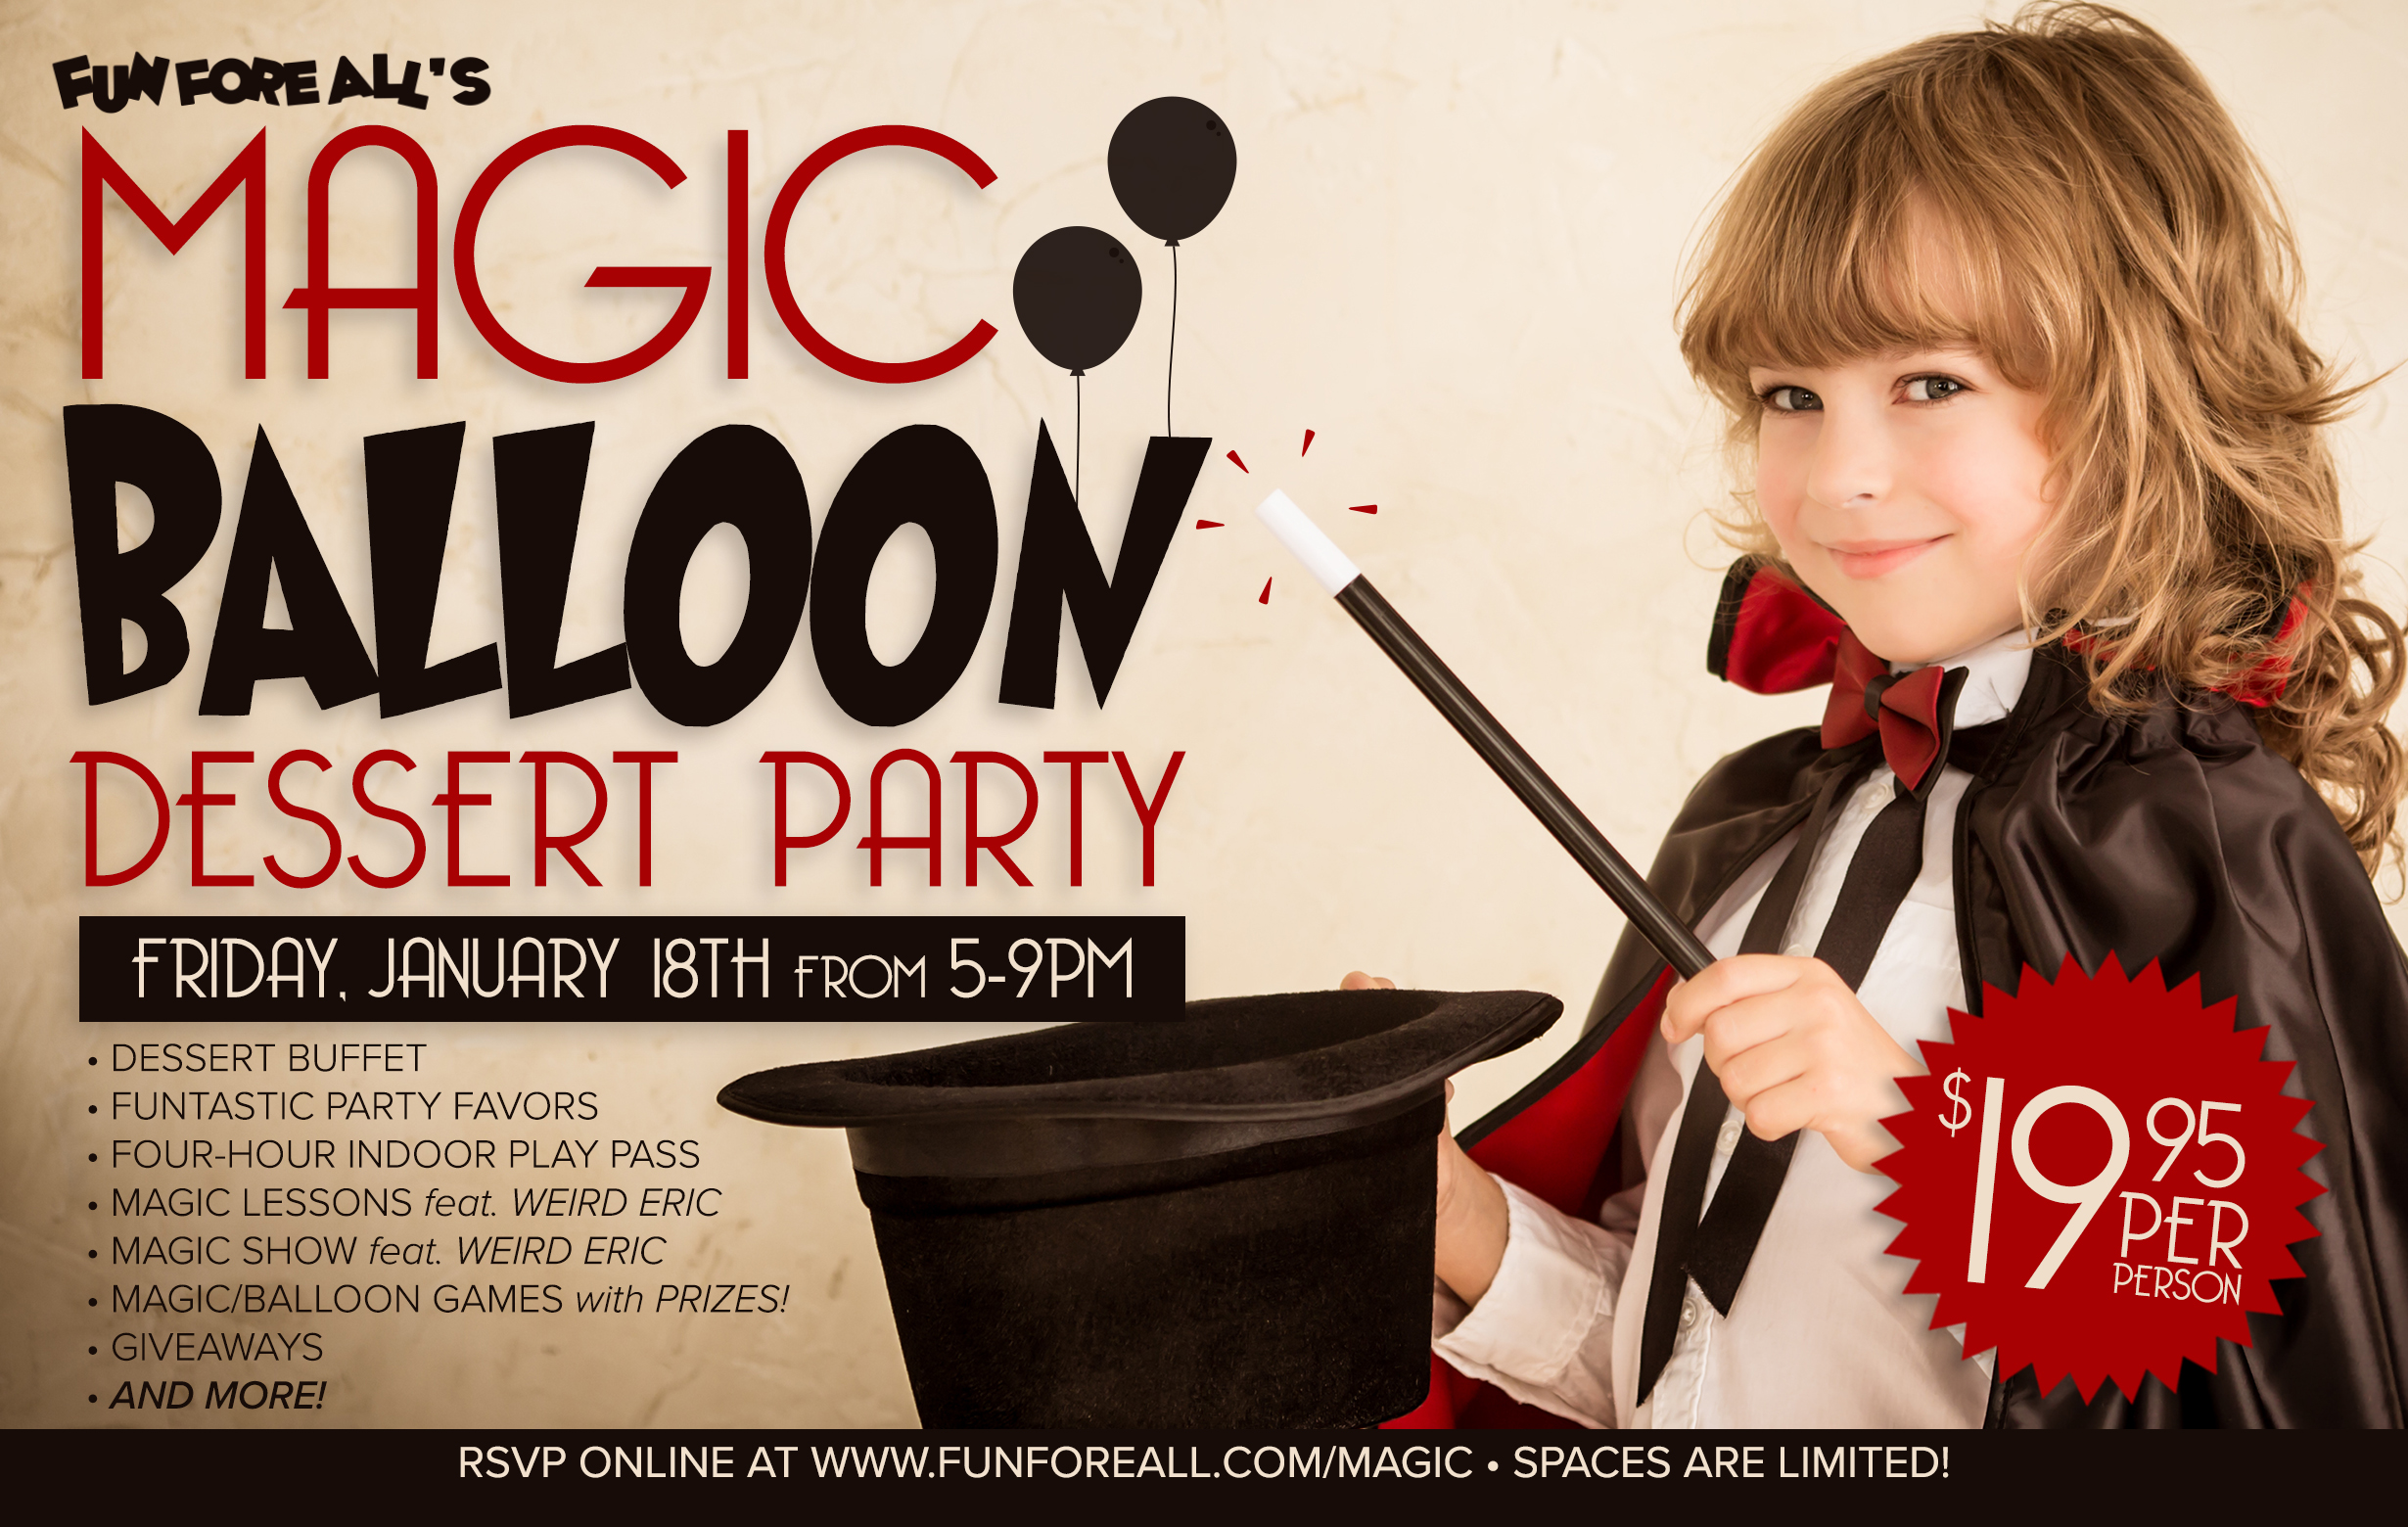 MAGIC BALLOON DESSERT PARTY FLYER (2019)